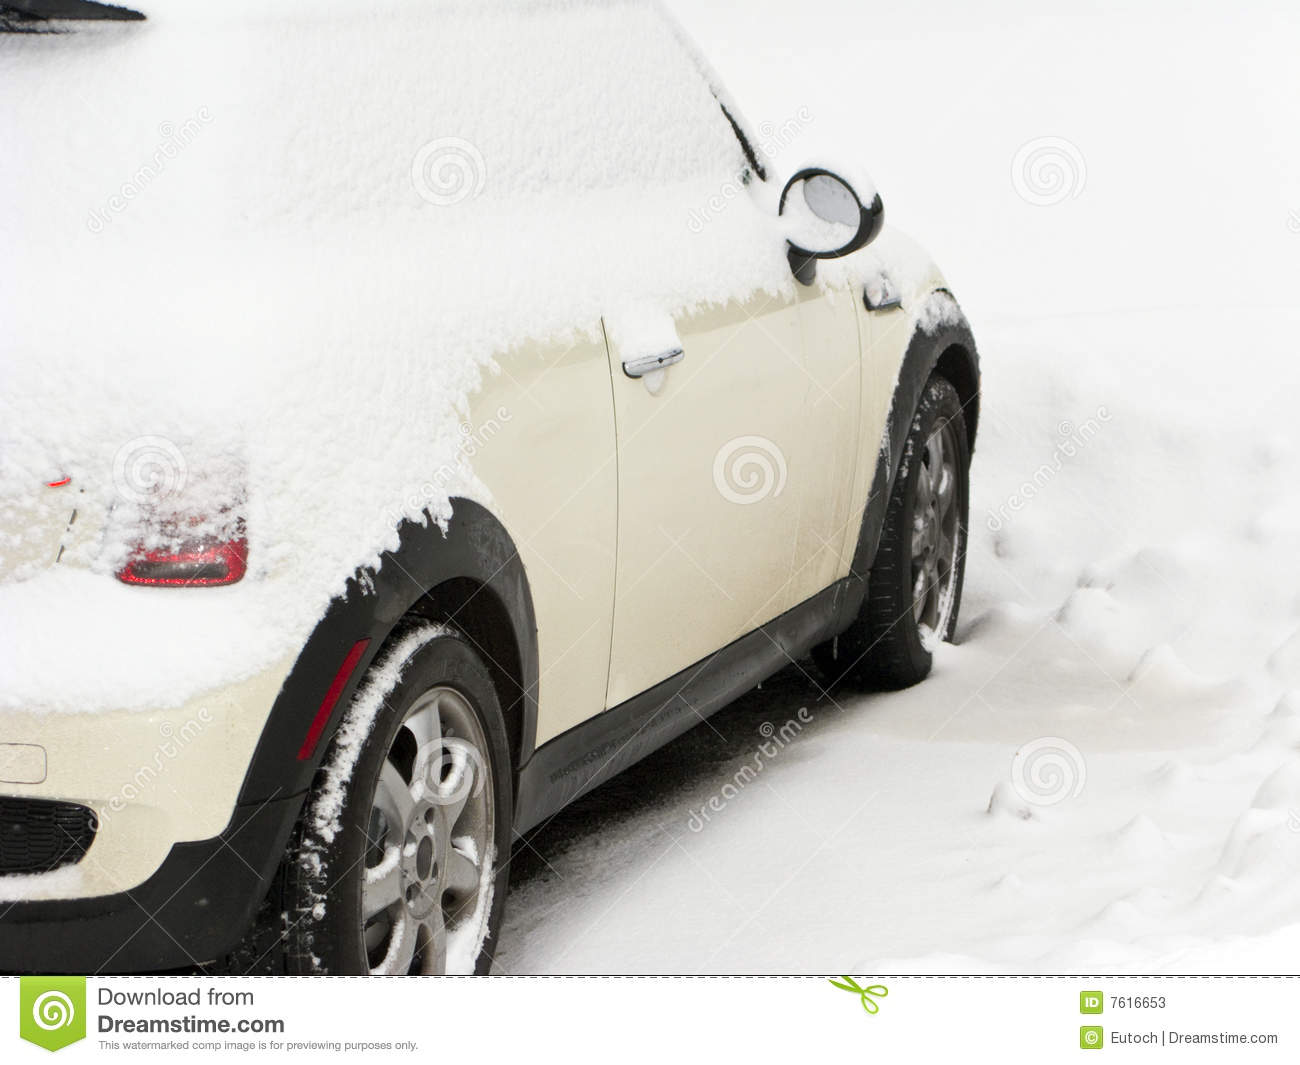 Snowdrift Maxi do carro